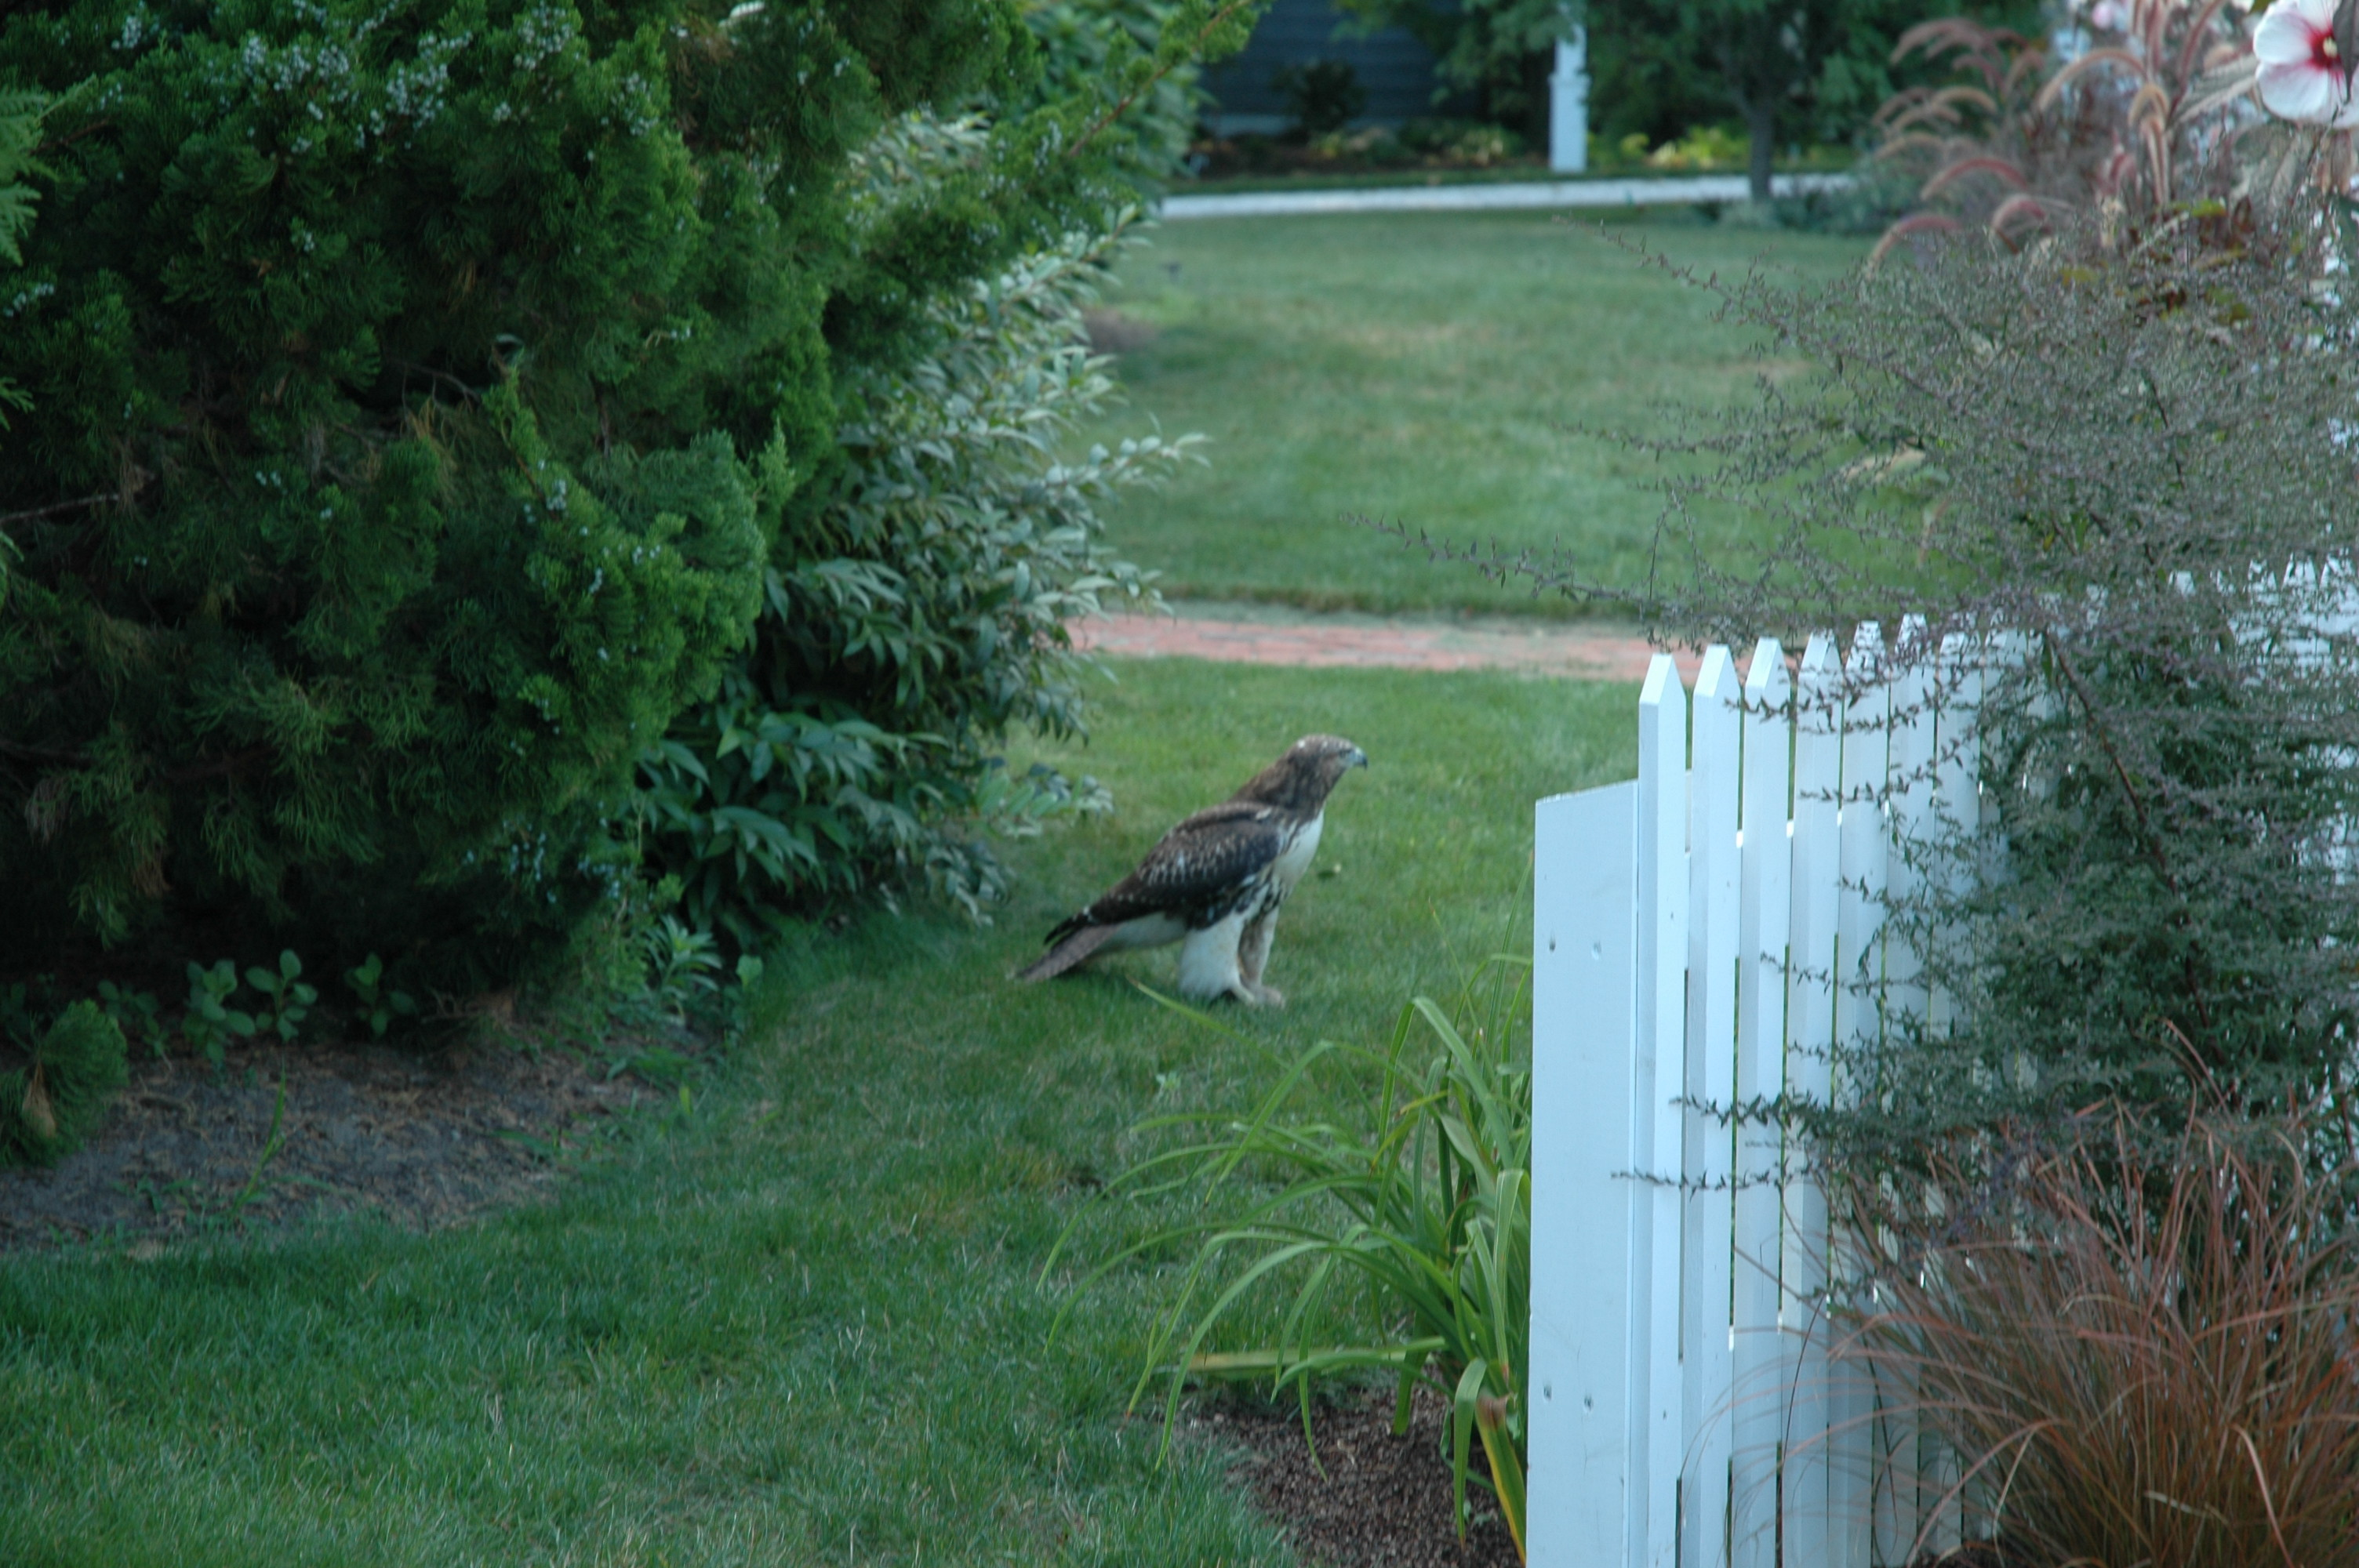 Red-Tailed Hawk in the front garden.